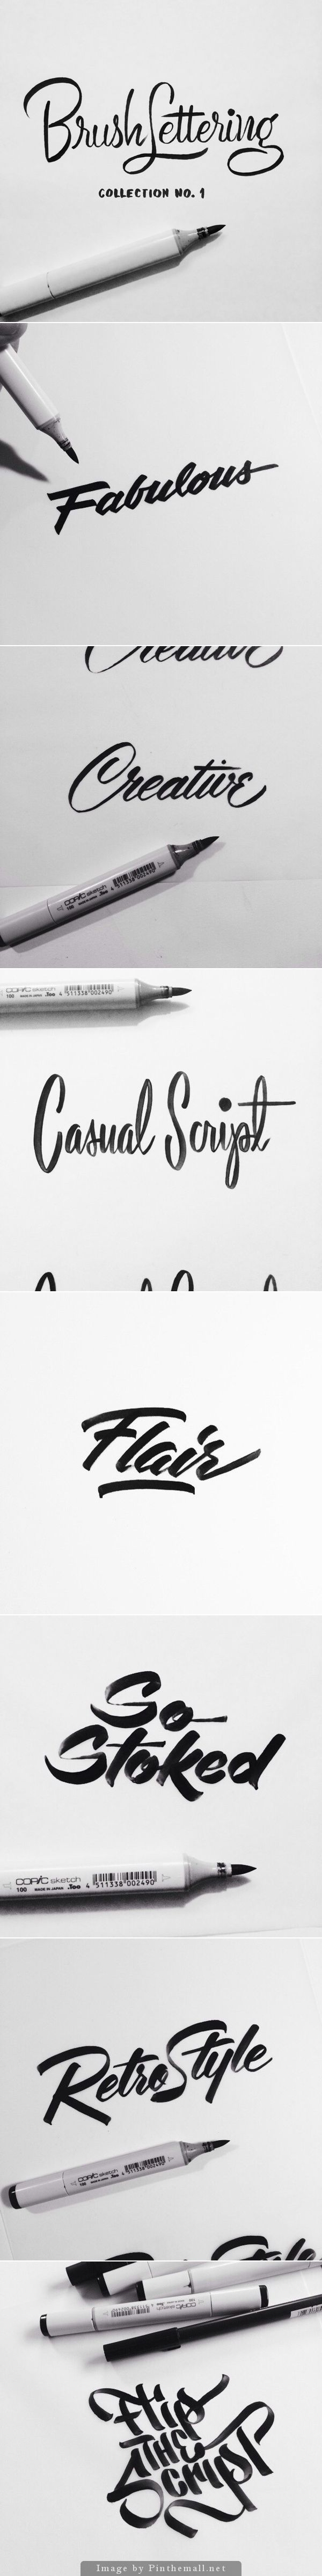 Brush Lettering Collection No. 1 is an exploration of achieving different brush script lettering styles using one writing instrument - a Copic Sketch marker | Designer: Neil Secretario